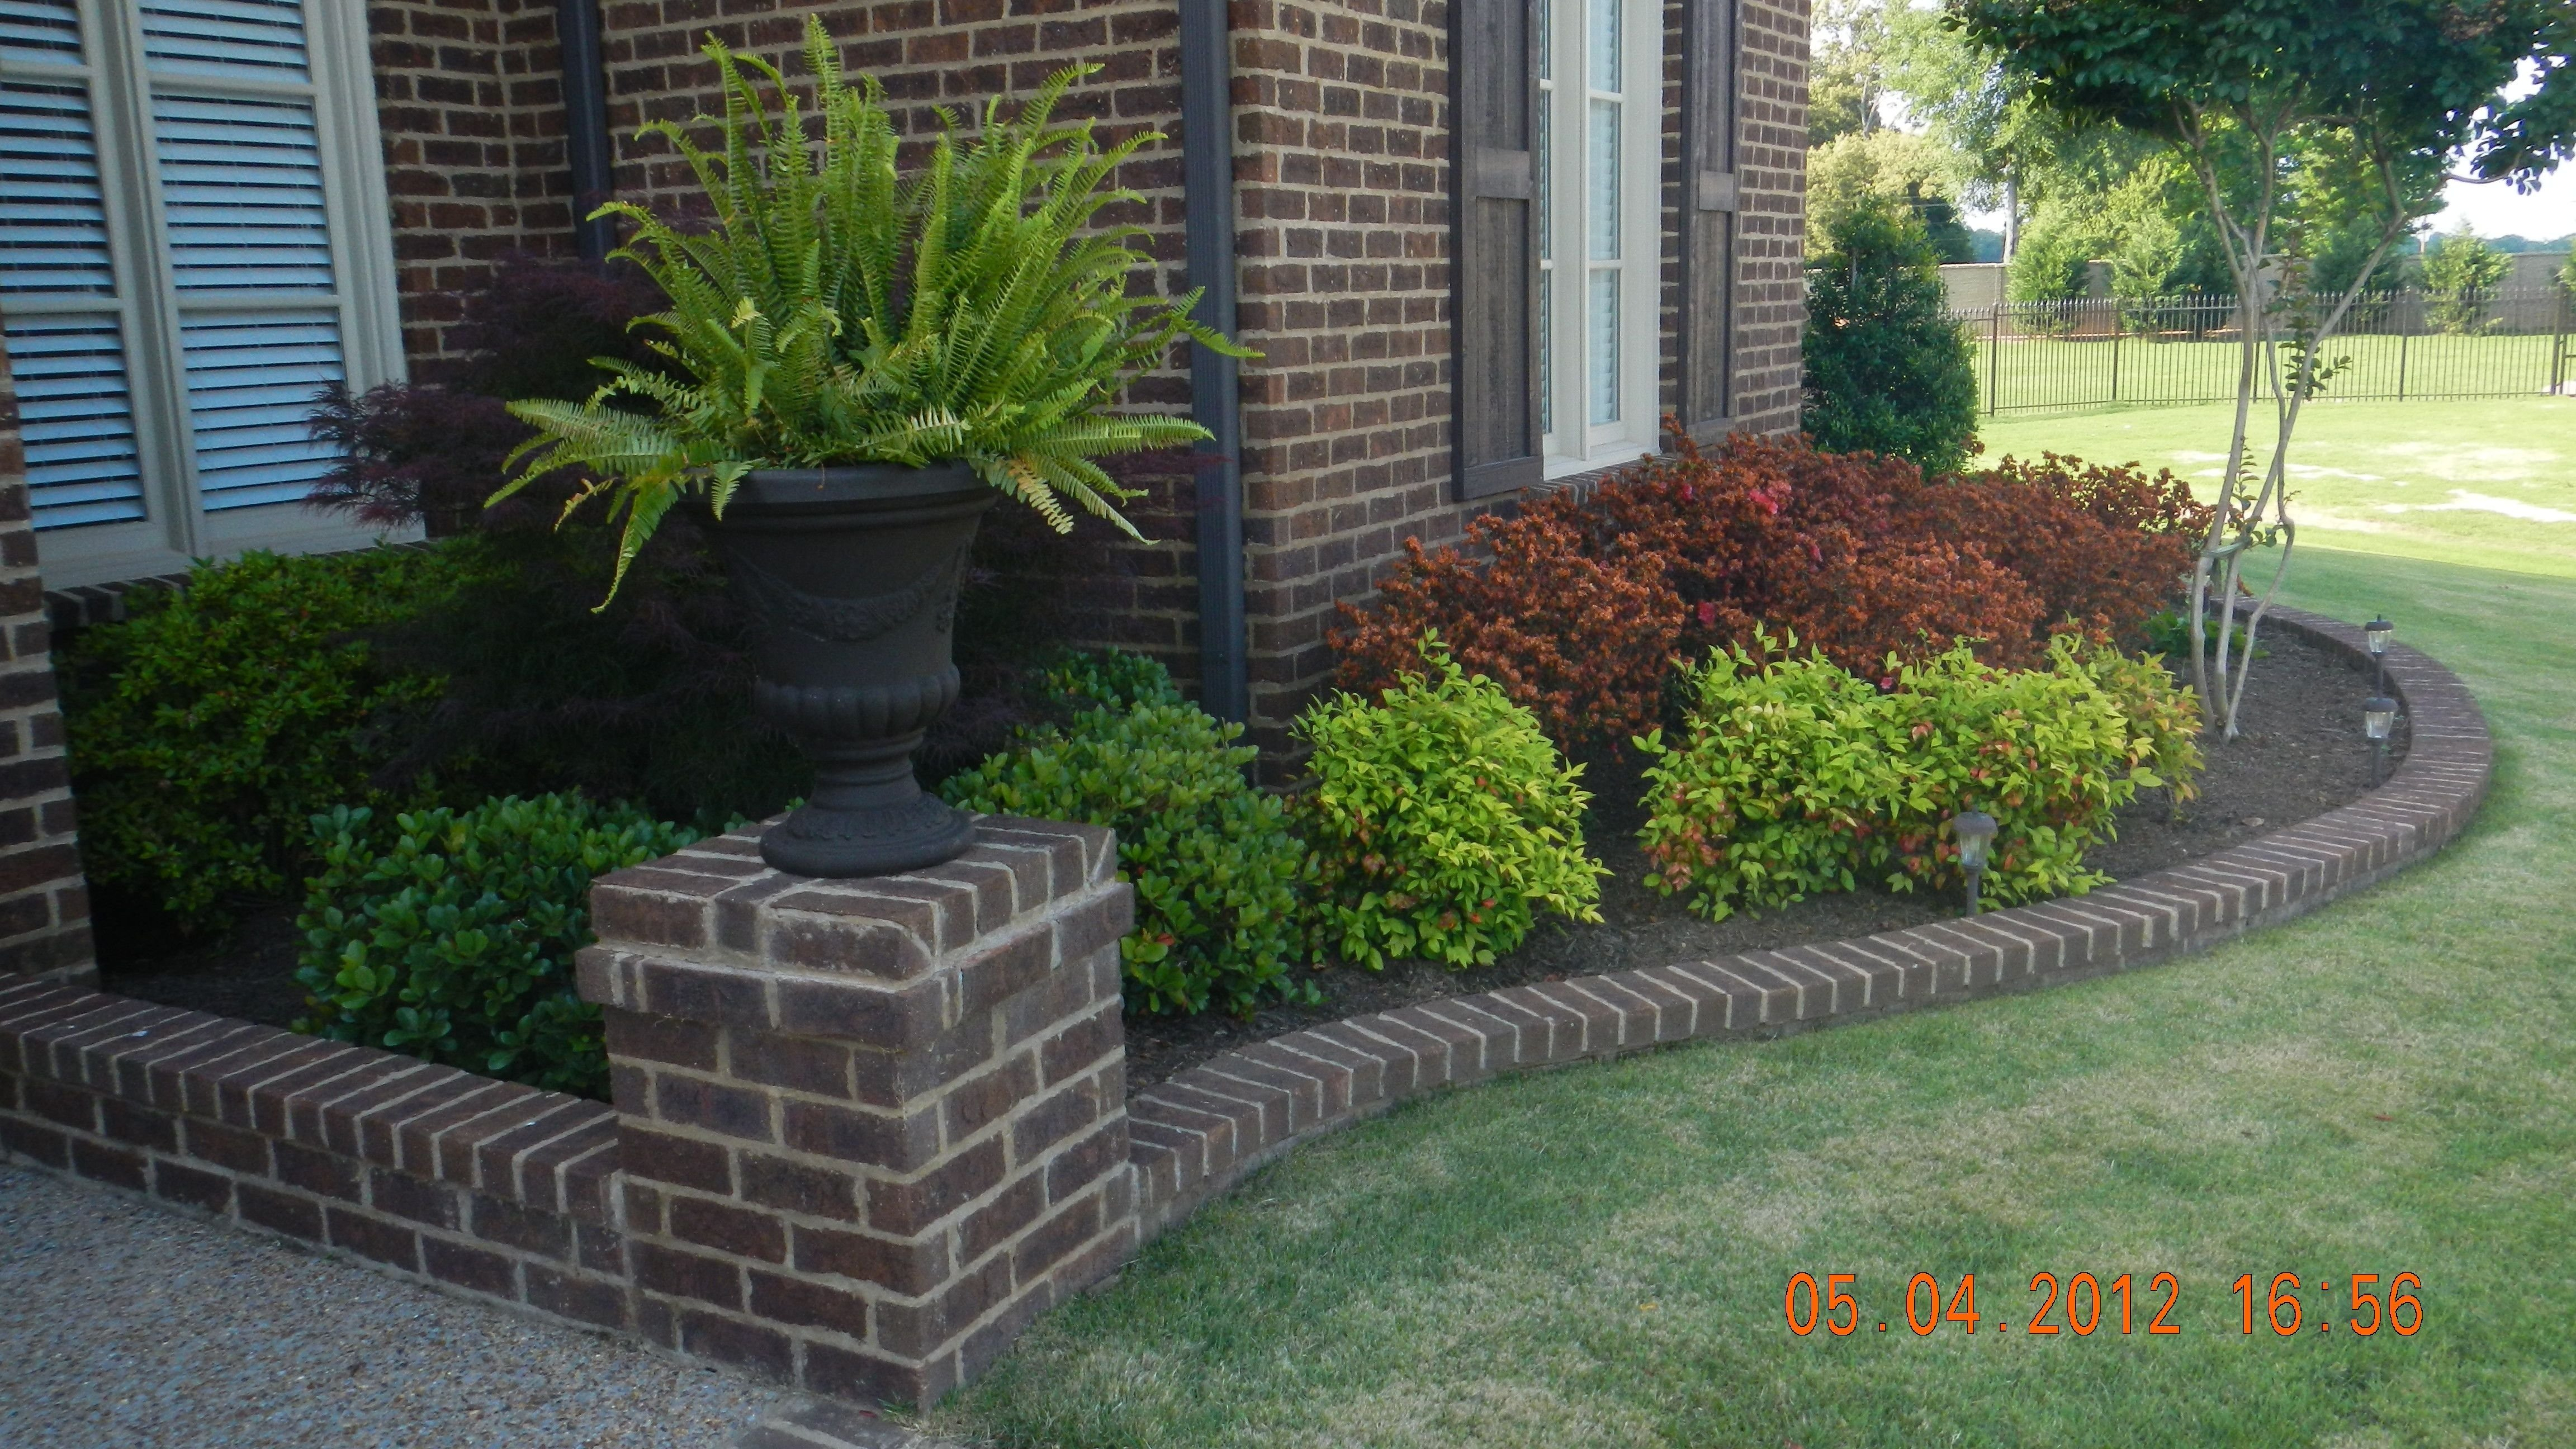 10 Nice Ideas For Front Yard Landscaping low maintenance front yard landscaping low maintenance landscaping 1 2020